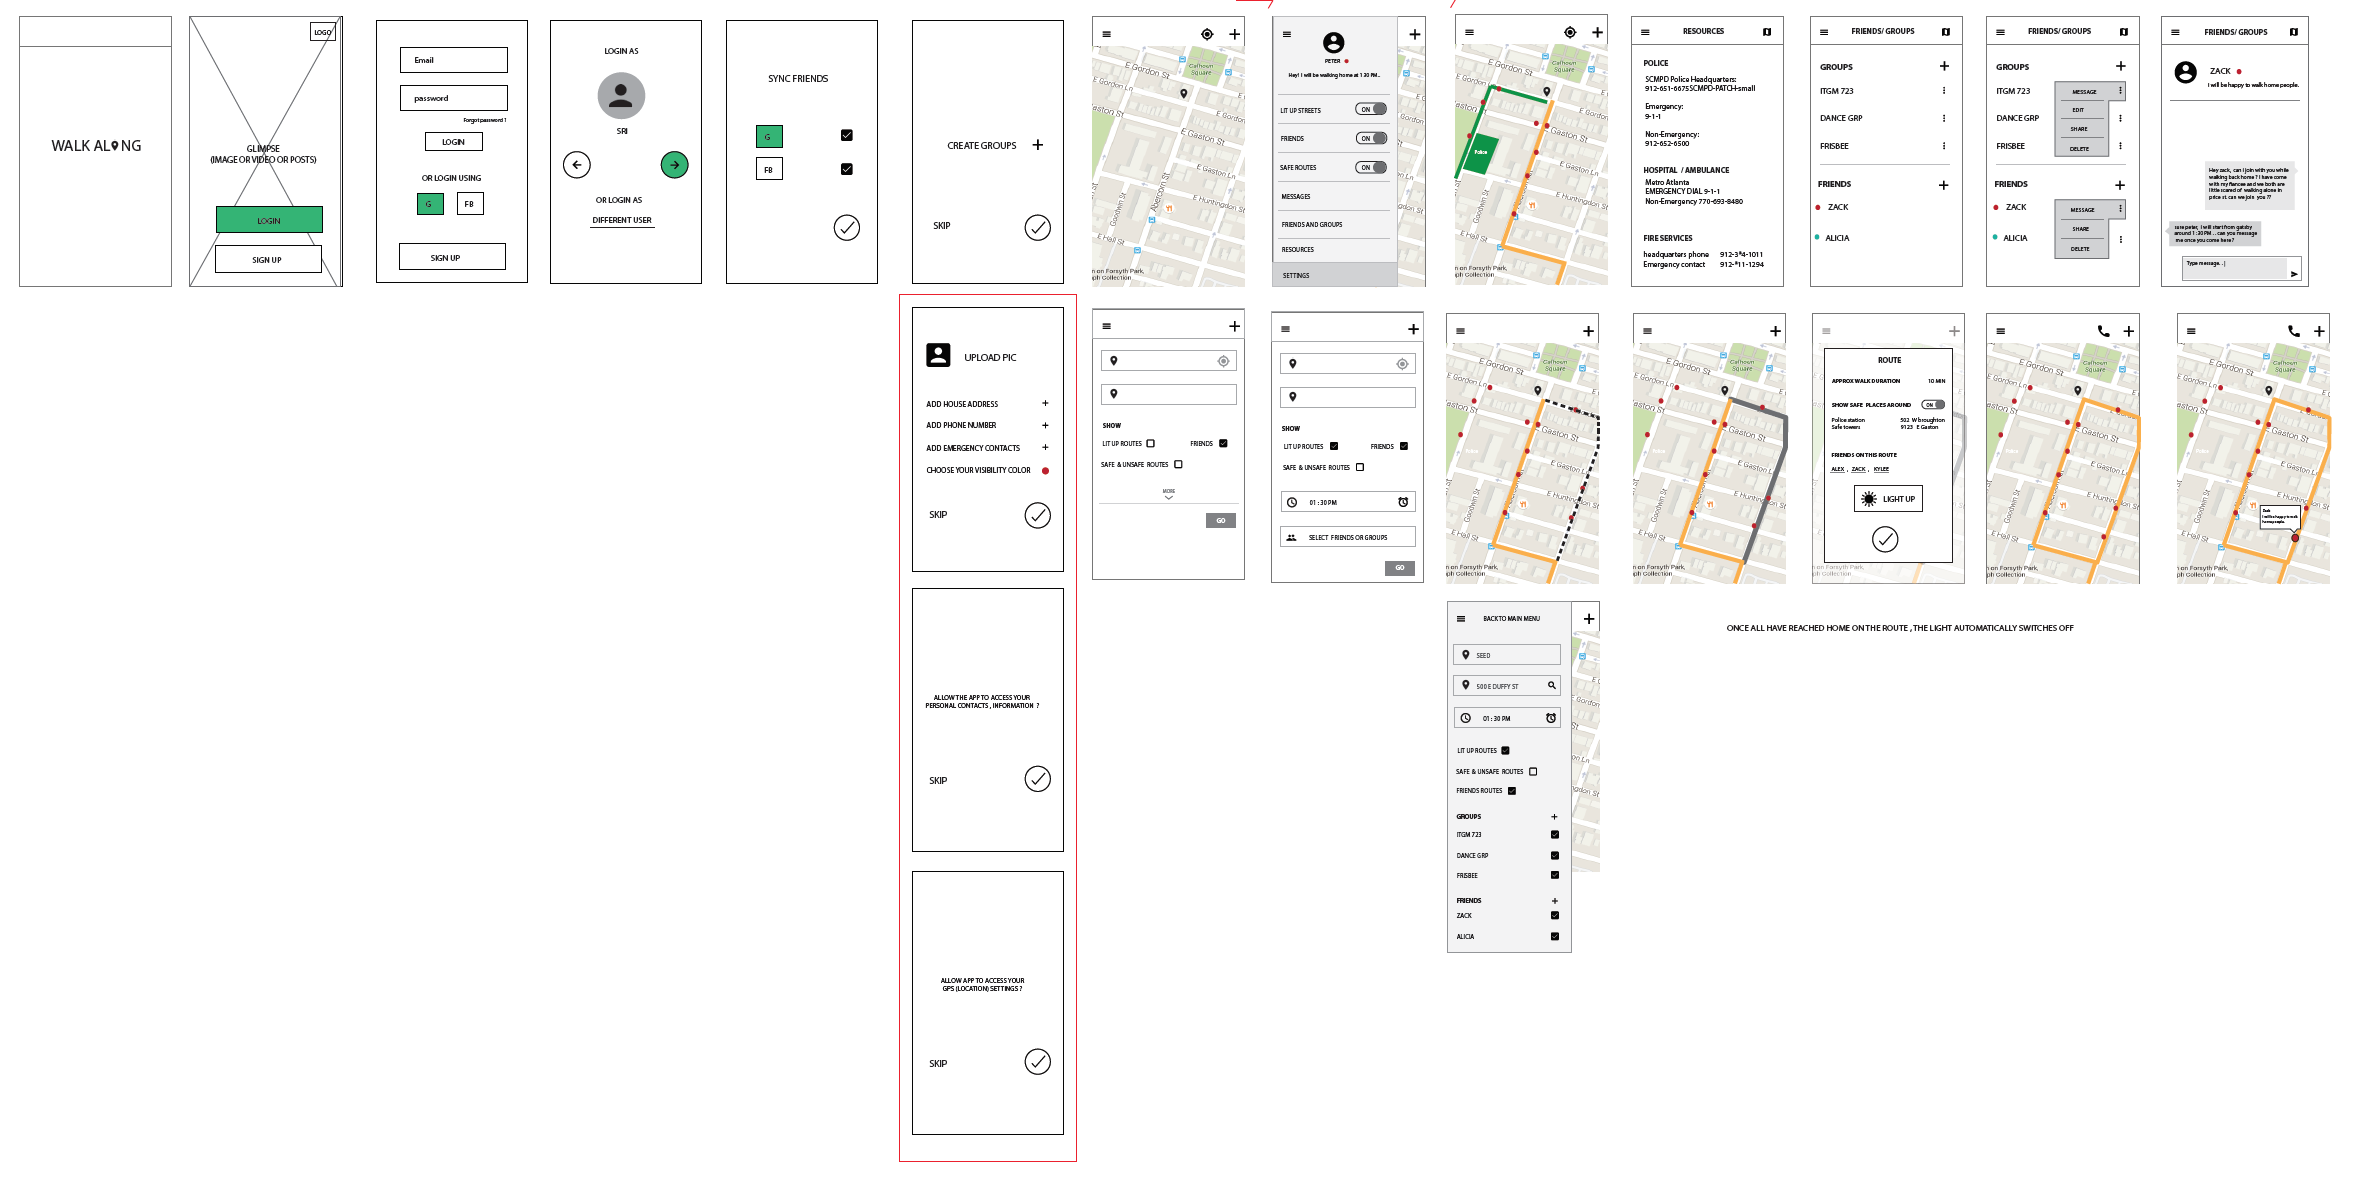 Wireframing - Information architecture in the form of a Sitemap or App Flow is created to guide the detailed aspects of the user experience. Ideating screen design and interactions with pen and paper keeps possibilities innovative and fluid.